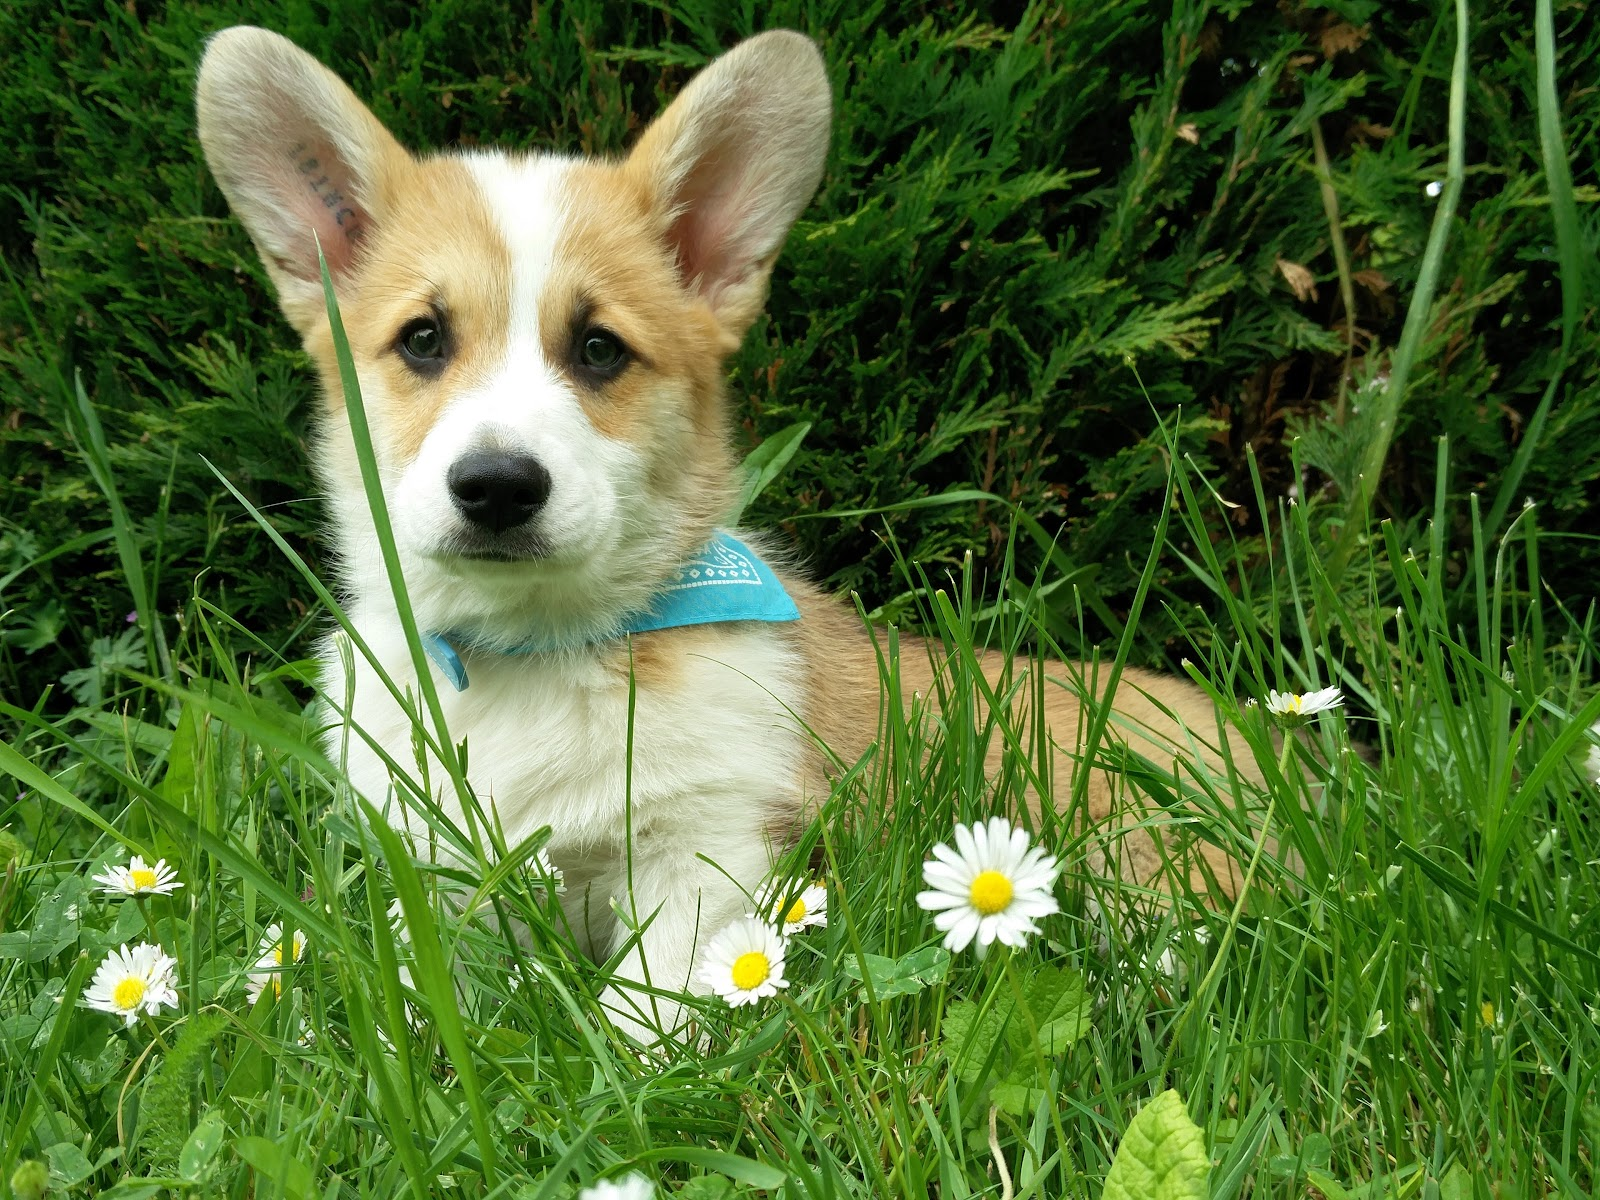 3 month old Corgi puppy